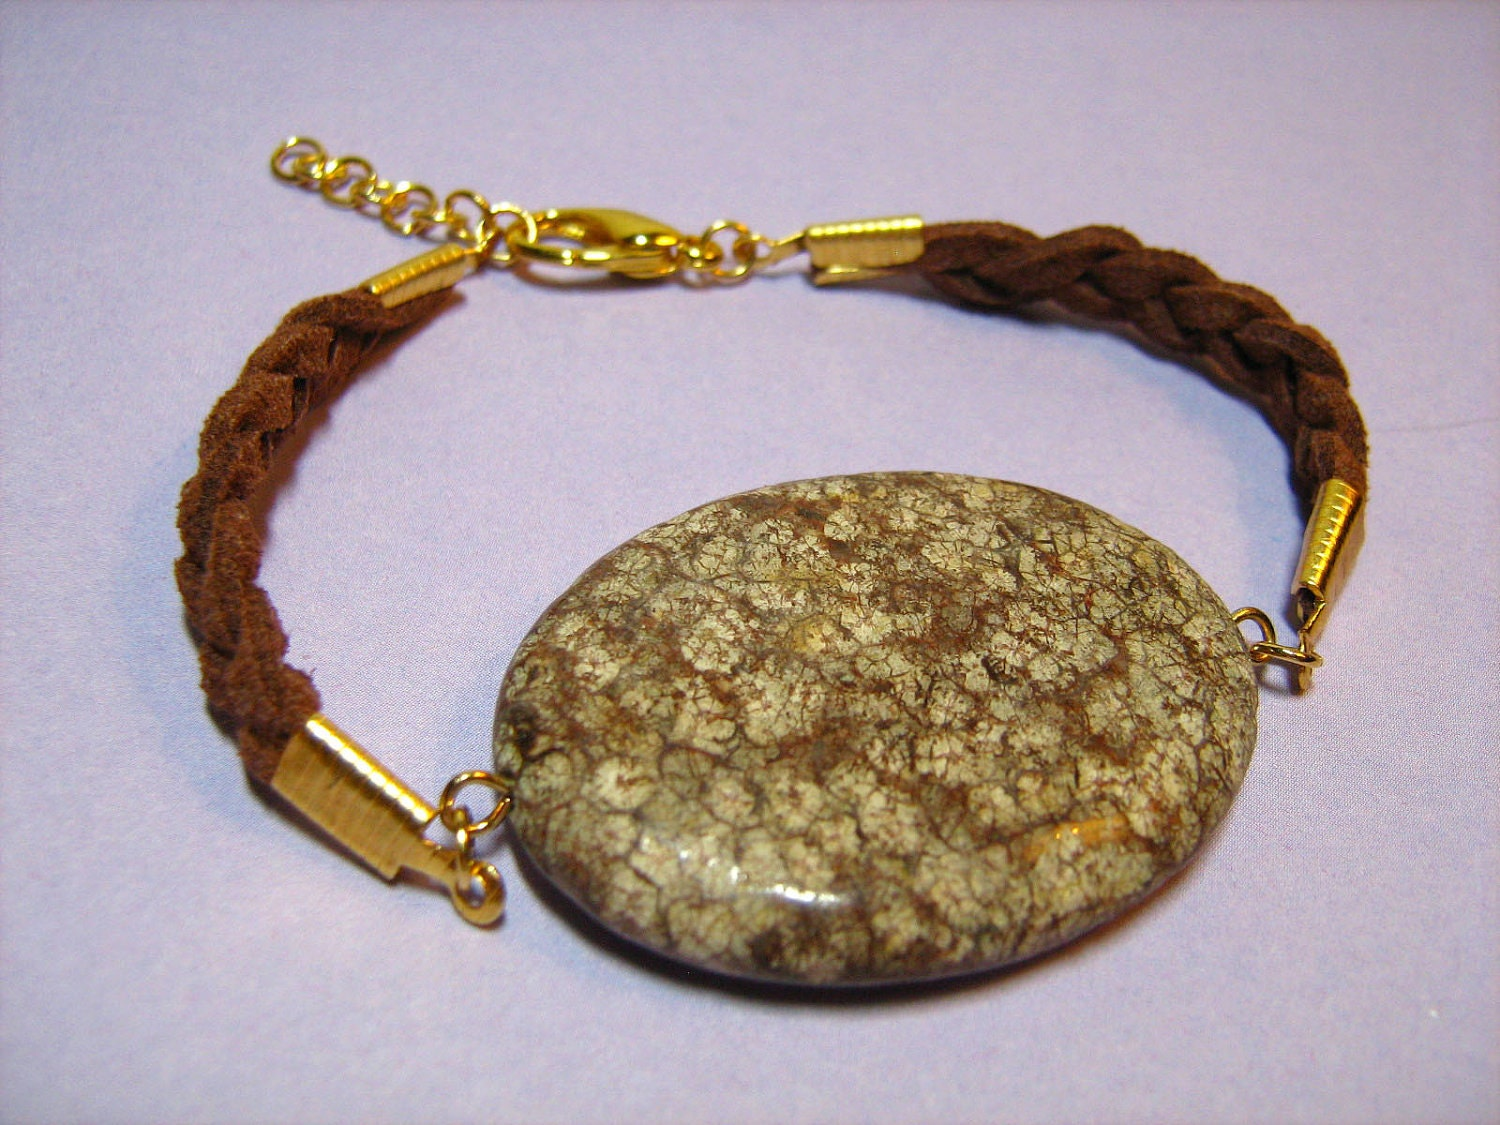 Bracelet: Braided Brown Suede Leather Cord with Brown Fossil Stone and Goldtone Findings, Extendable, Lobster Clasp